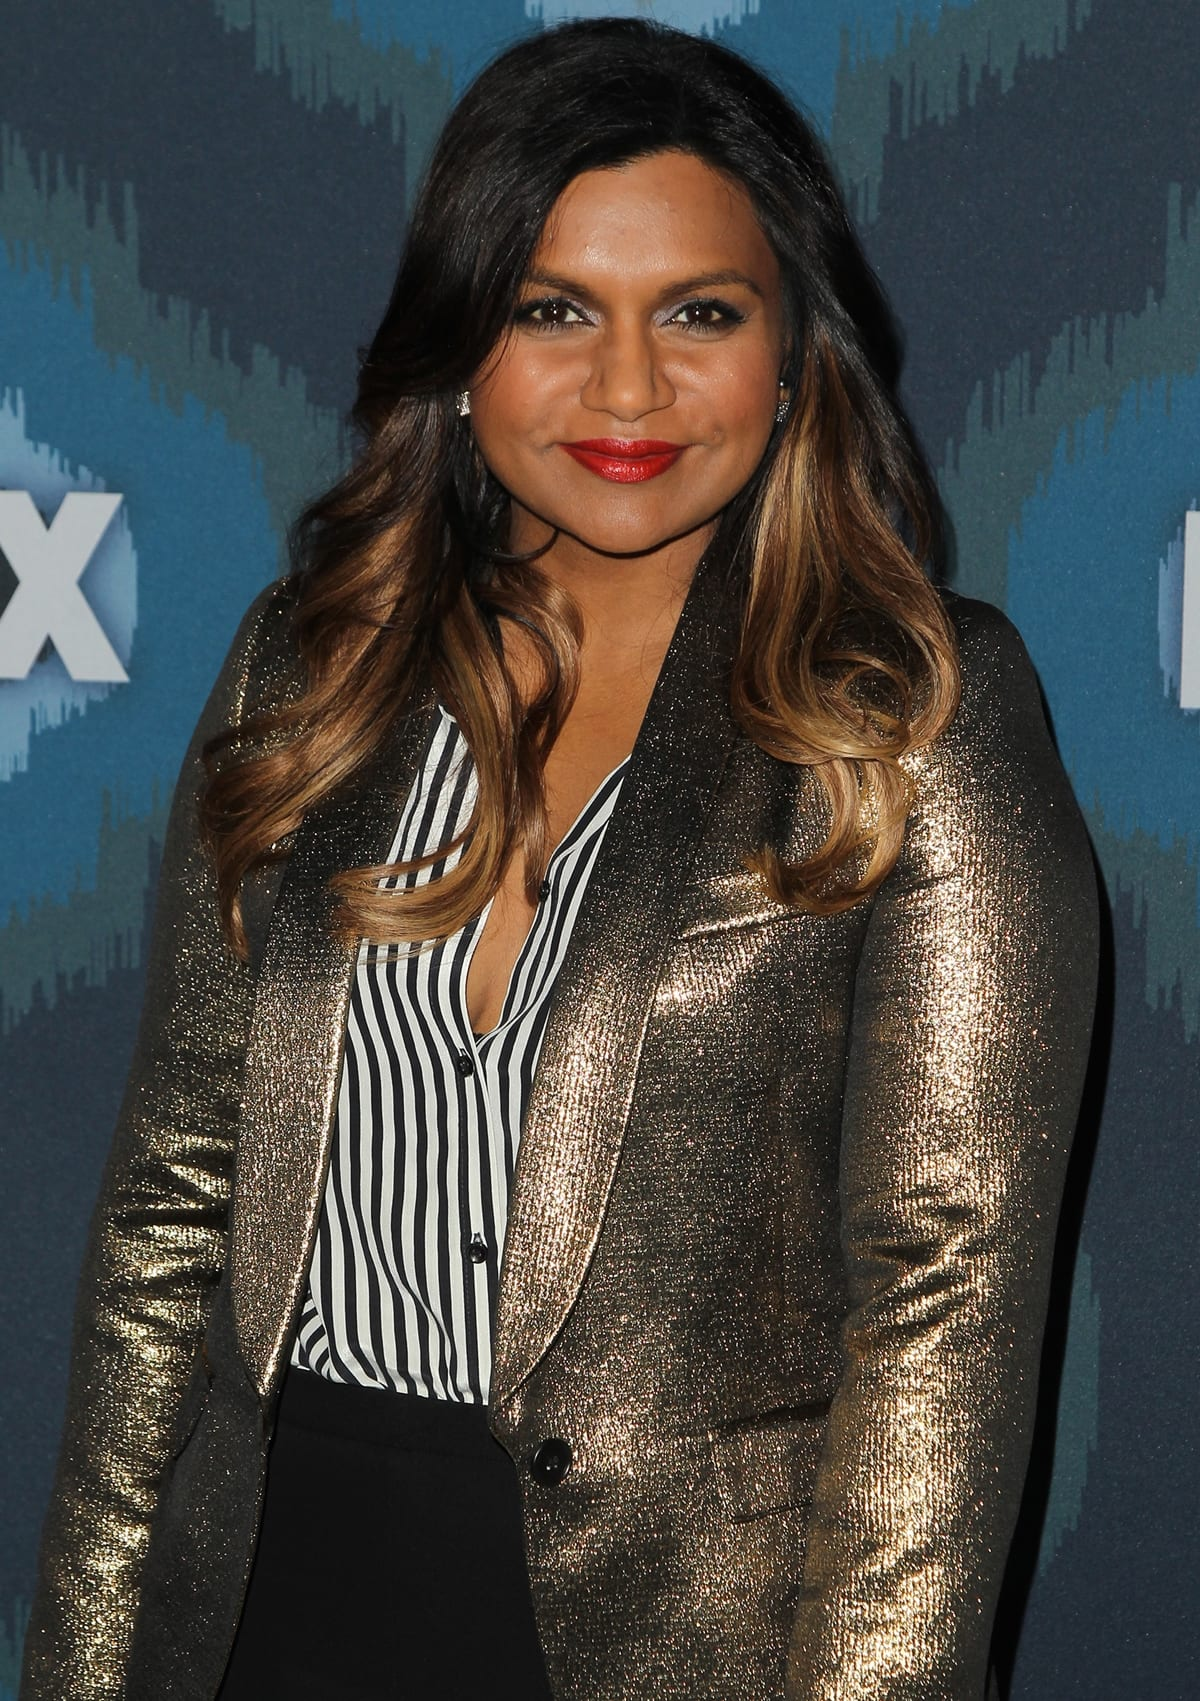 Mindy Kaling says she's happy without a husband and no longer wants to get married